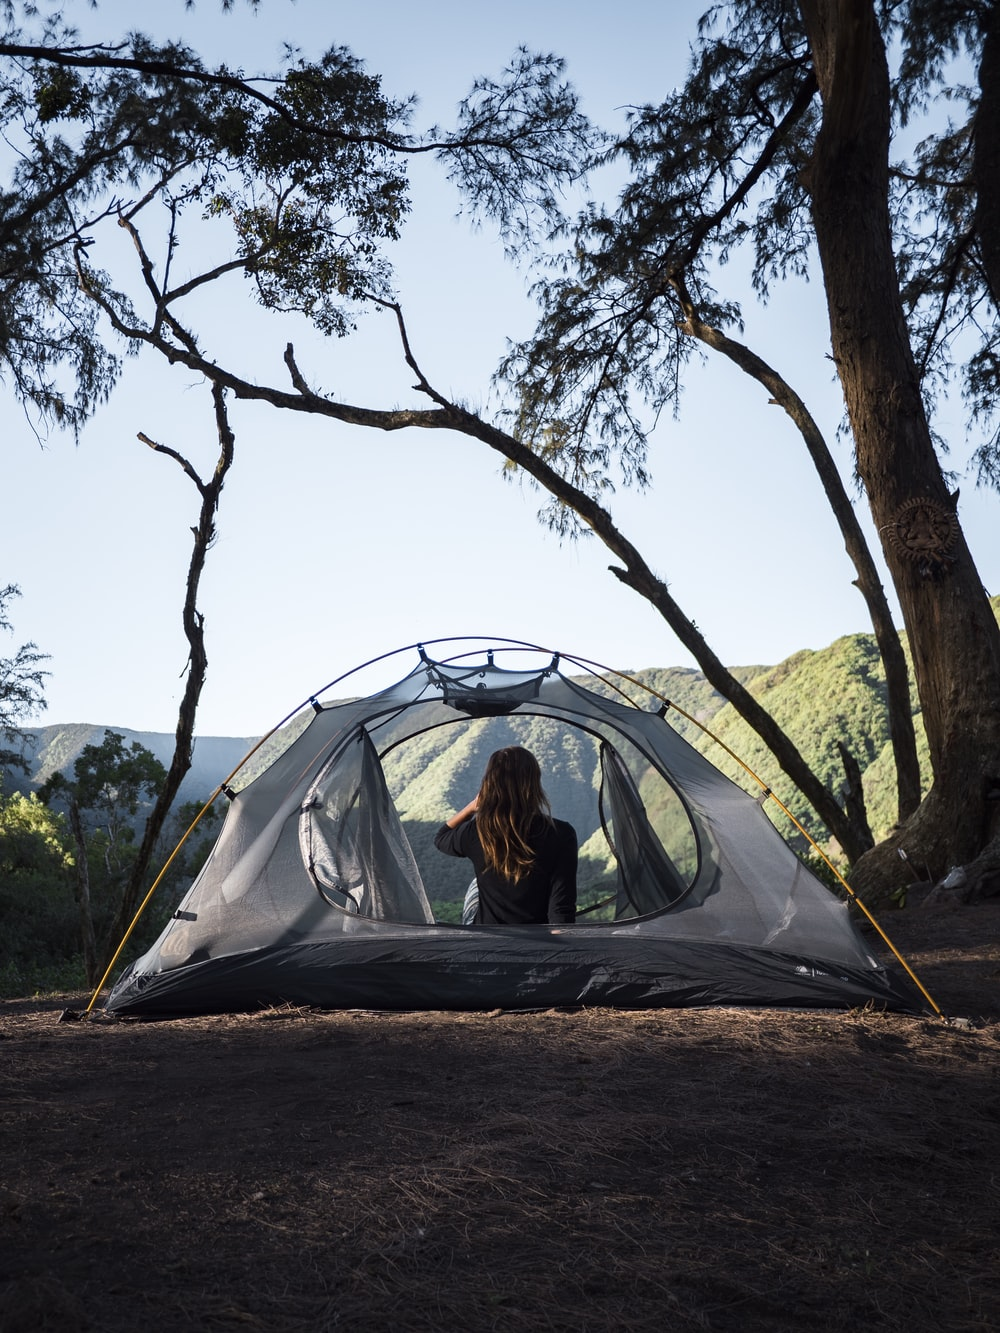 person in tent under tree during daytime